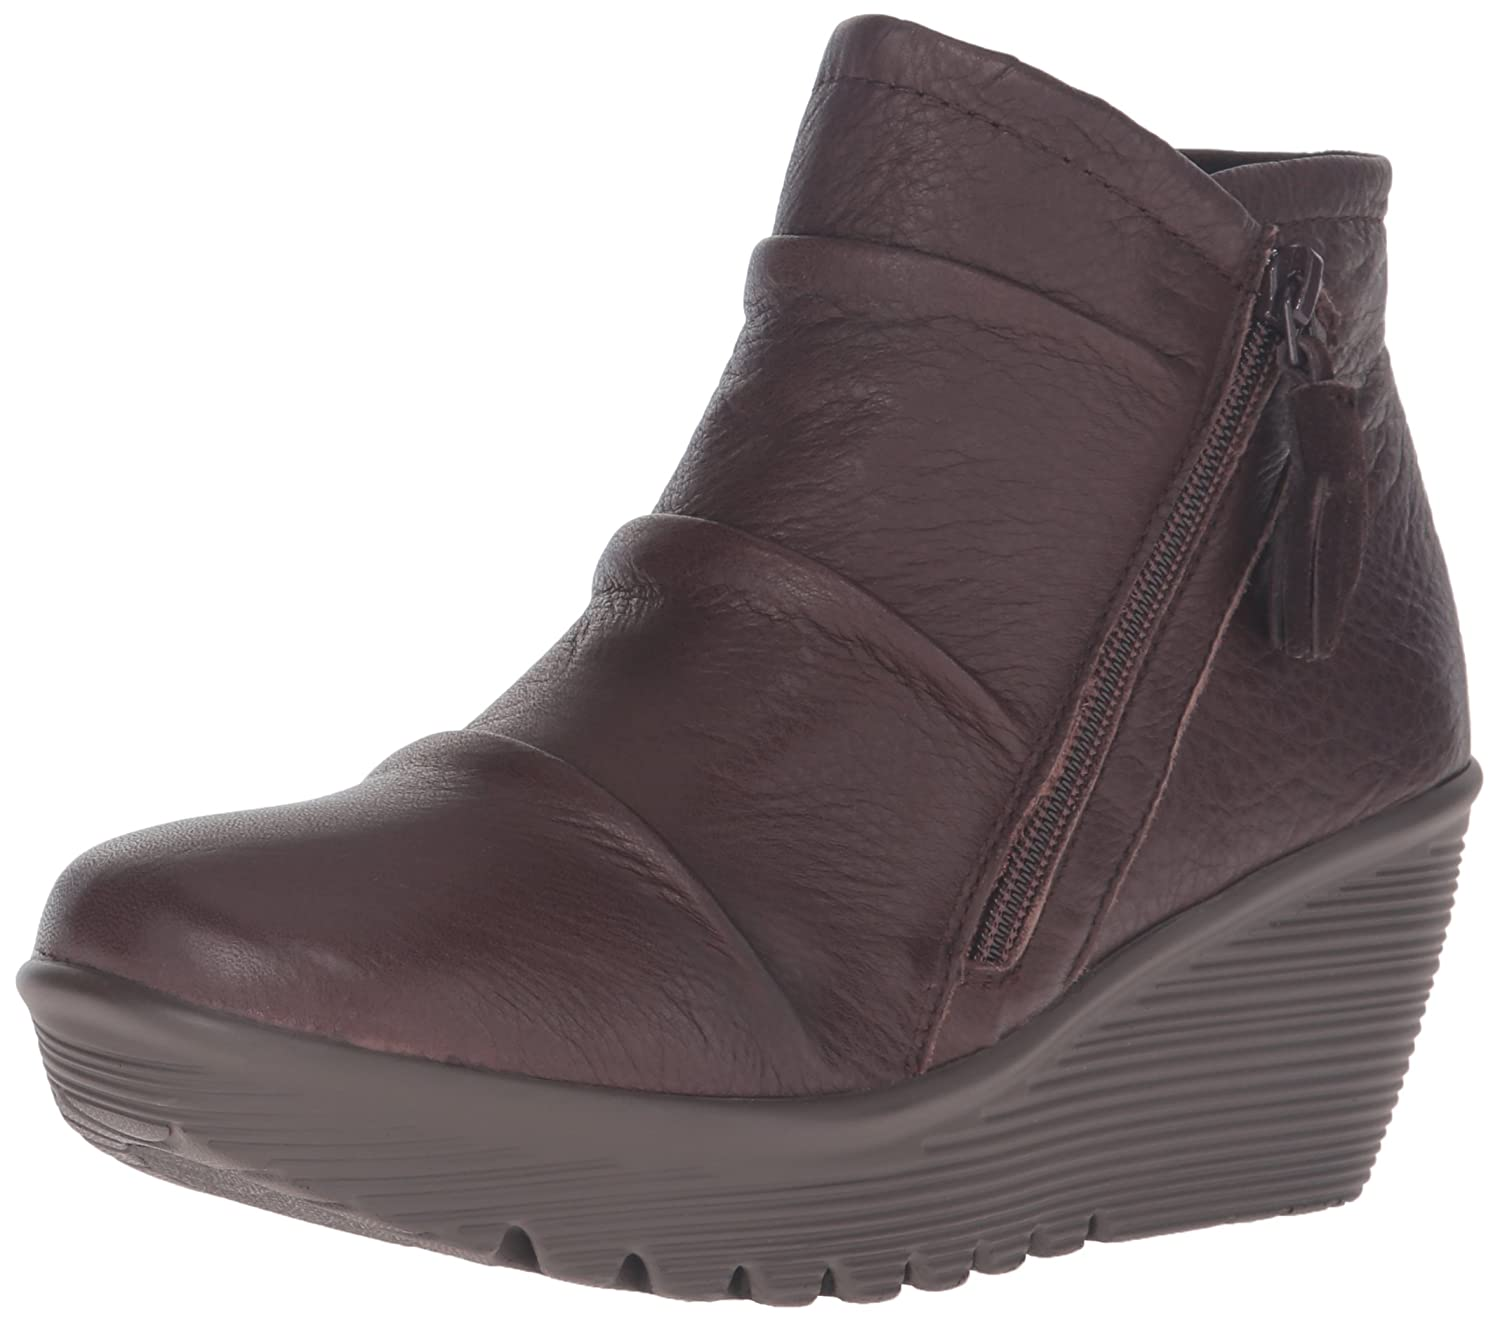 1093fcbece43 Skechers Women s Parallel-Double Trouble Ankle Bootie  Amazon.co.uk  Shoes    Bags